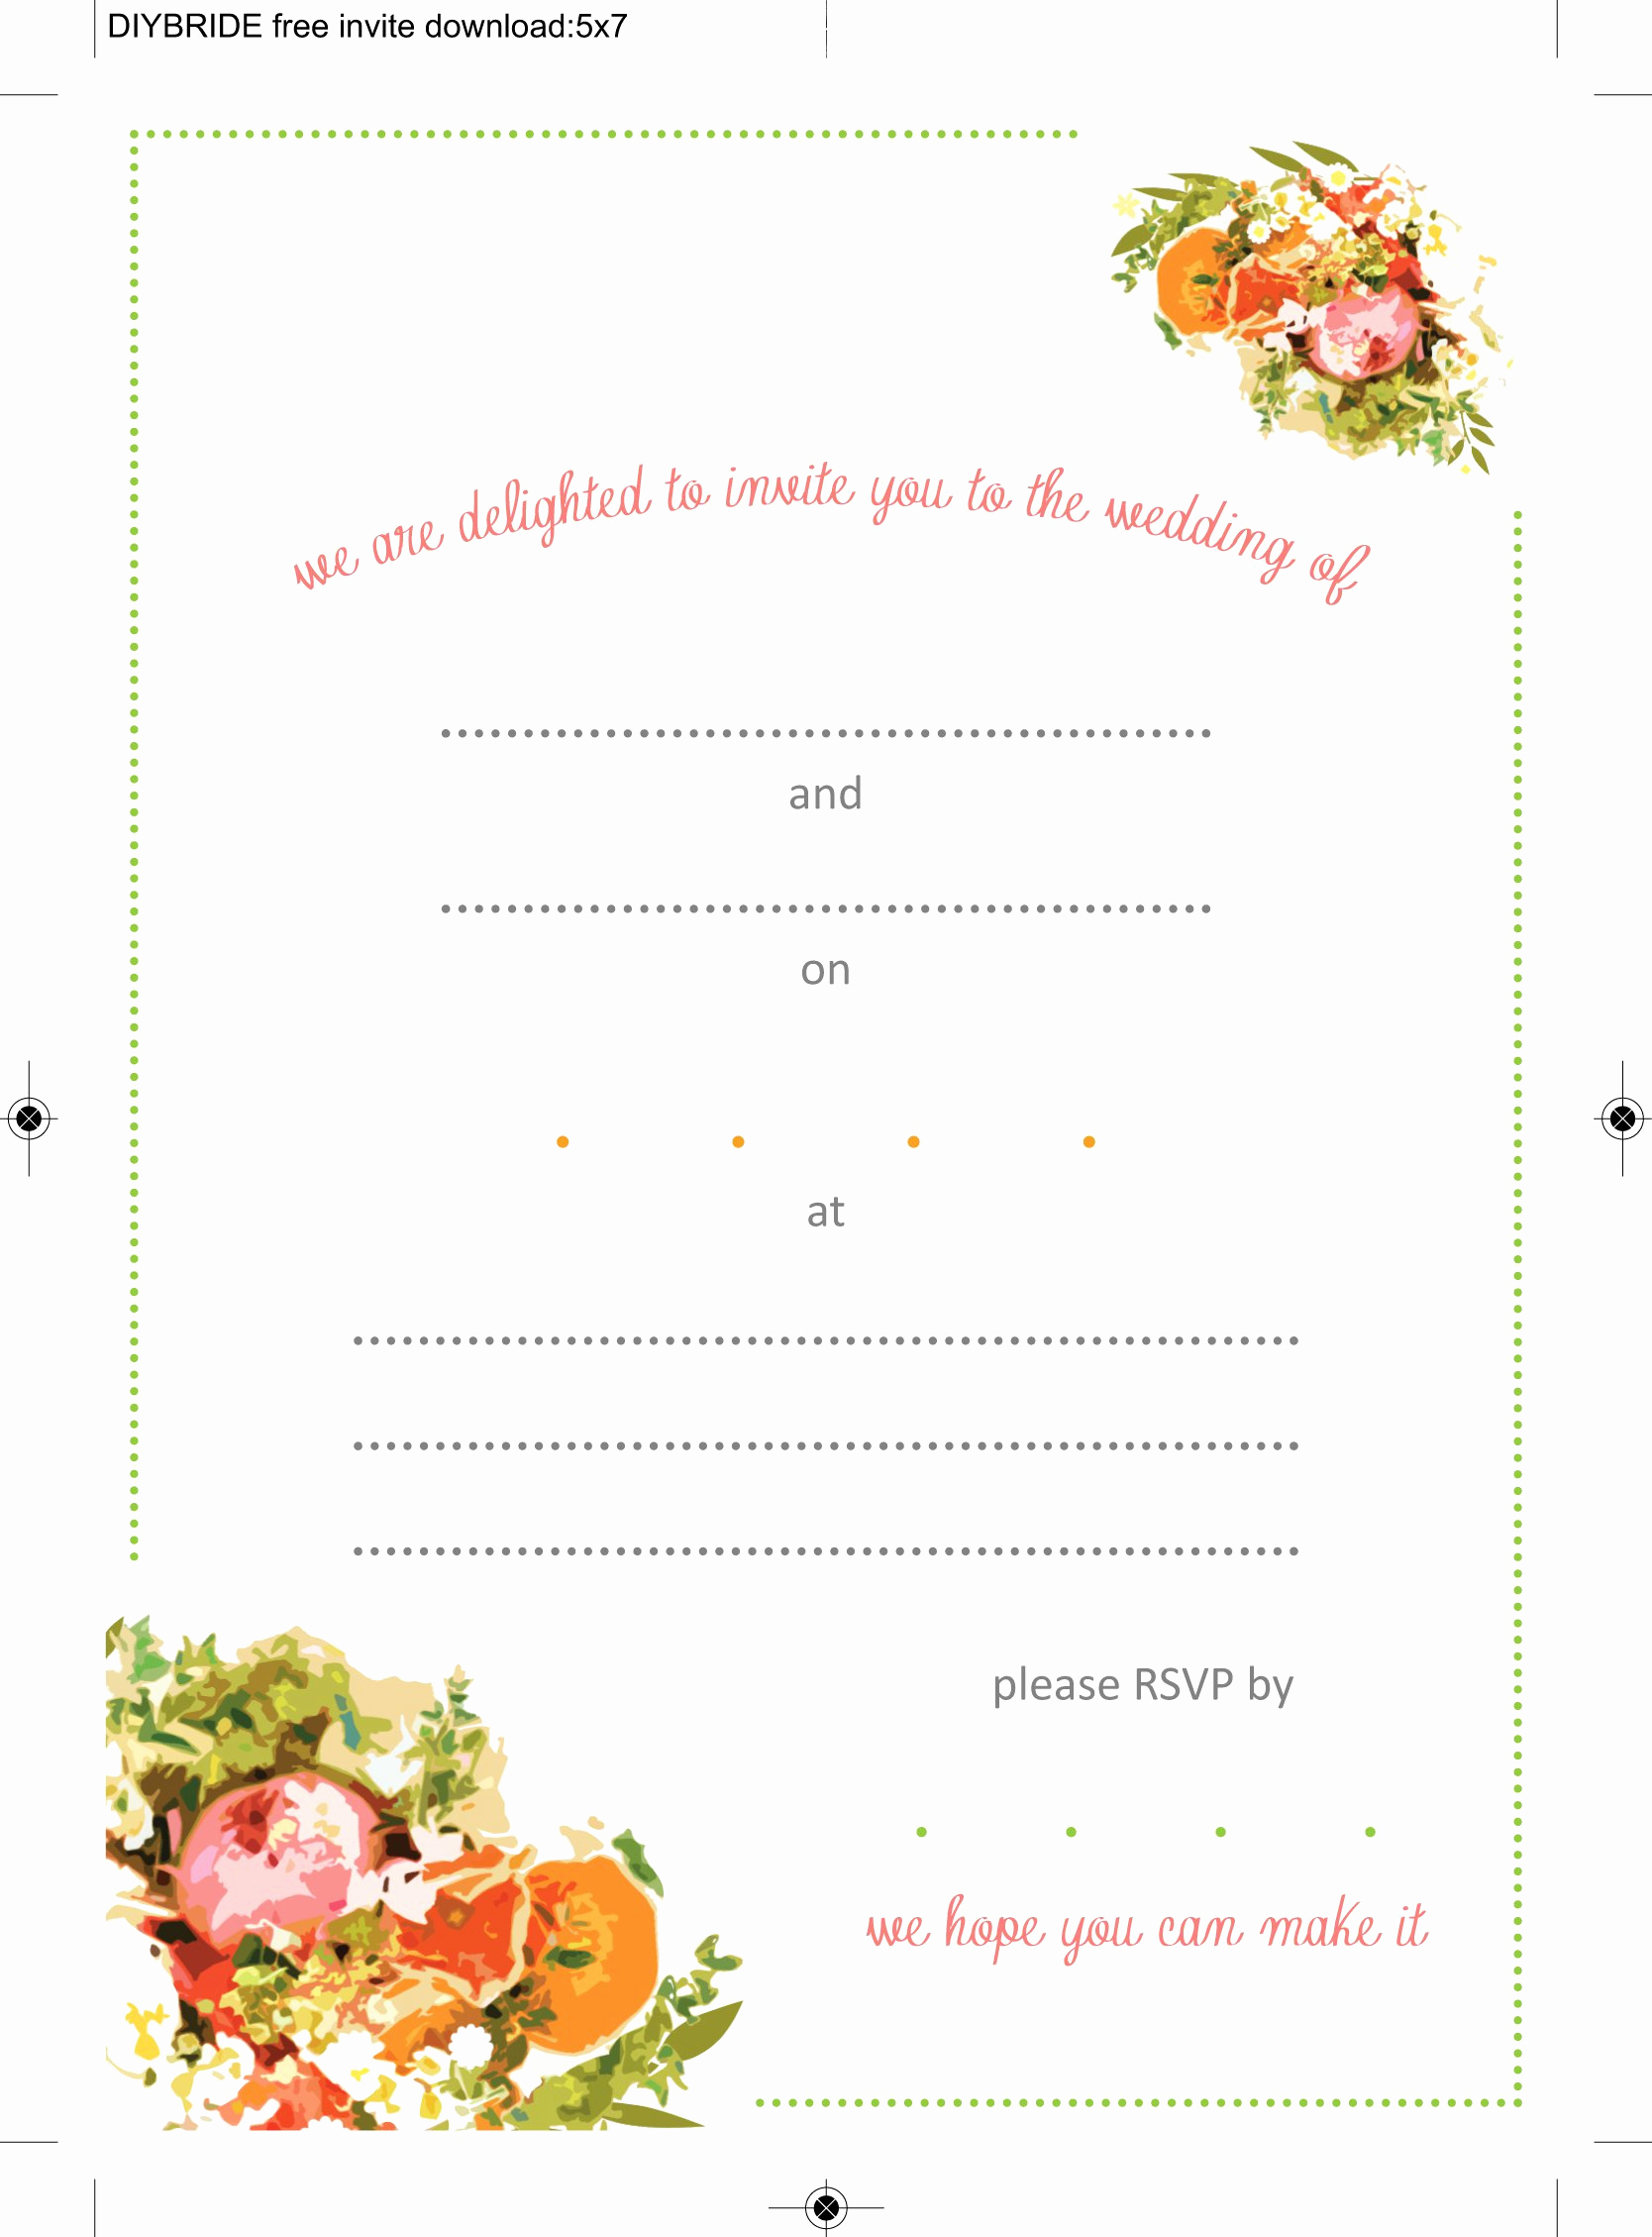 Wedding Invitation Templates Free Lovely Wedding Invitation Templates that are Cute and Easy to